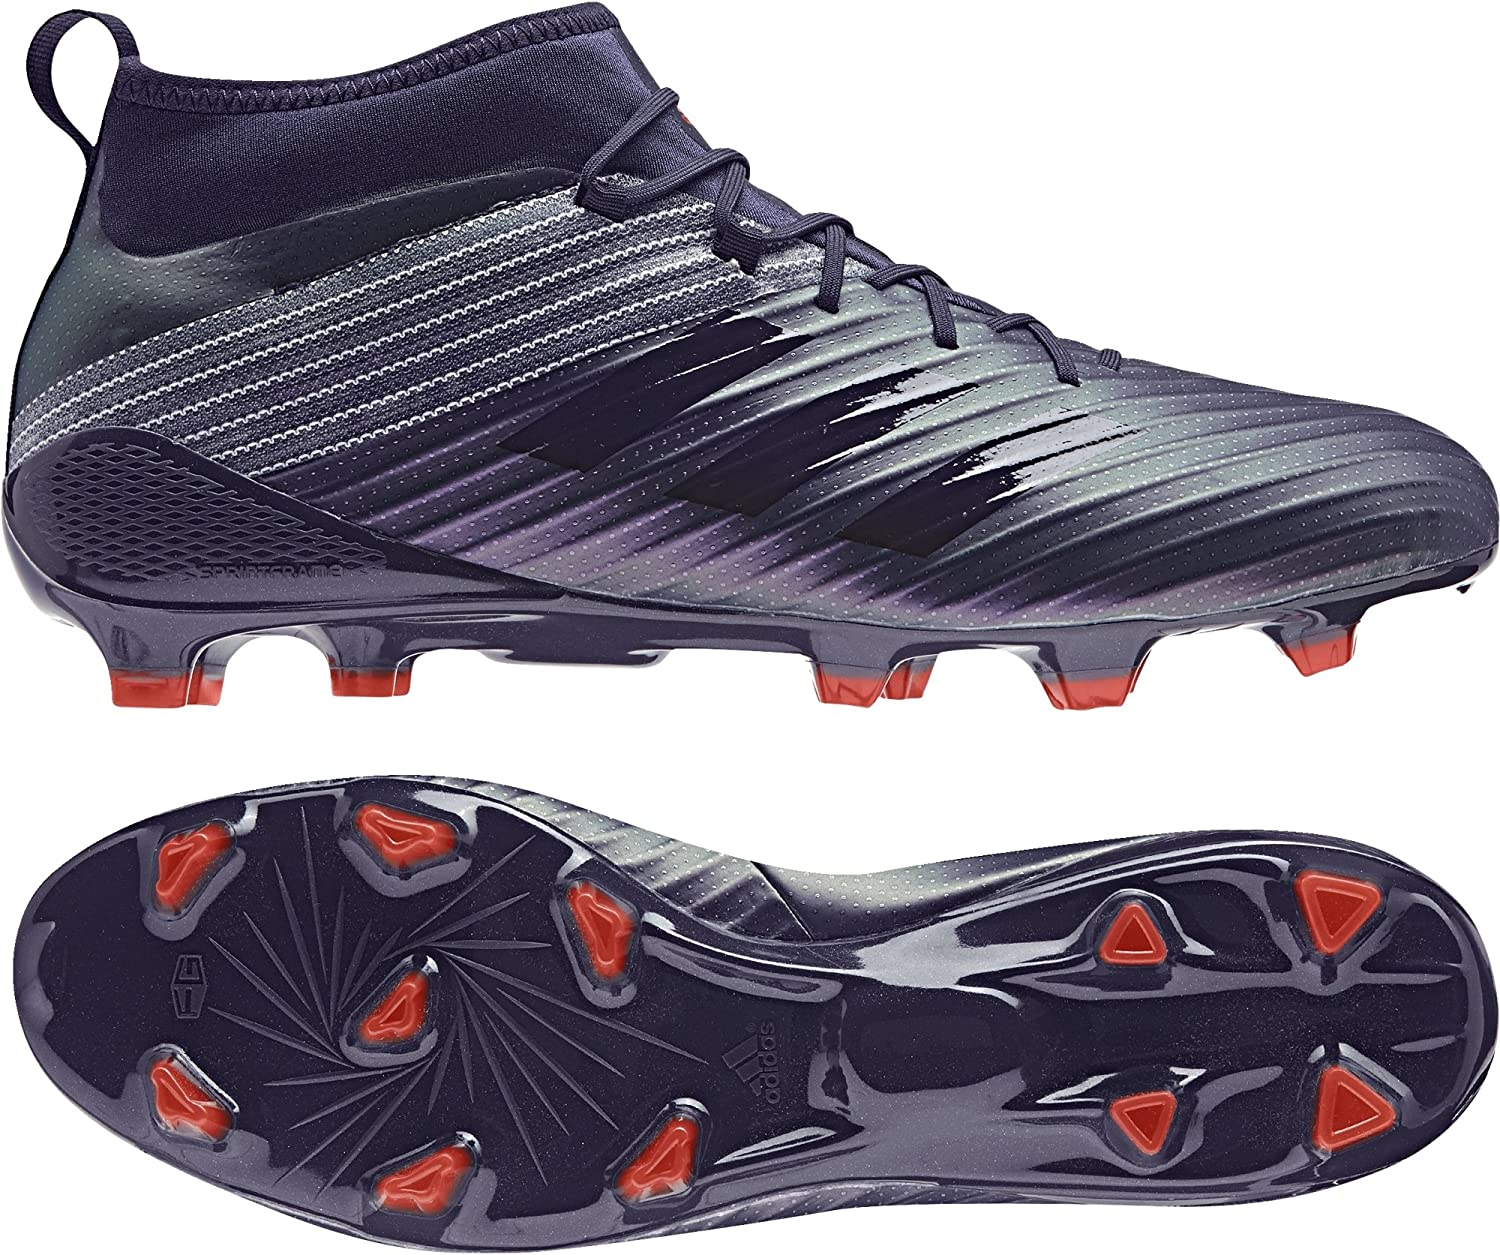 Adidas Performance Mens Predator Flare FG Rugby Boots -Noble Ink